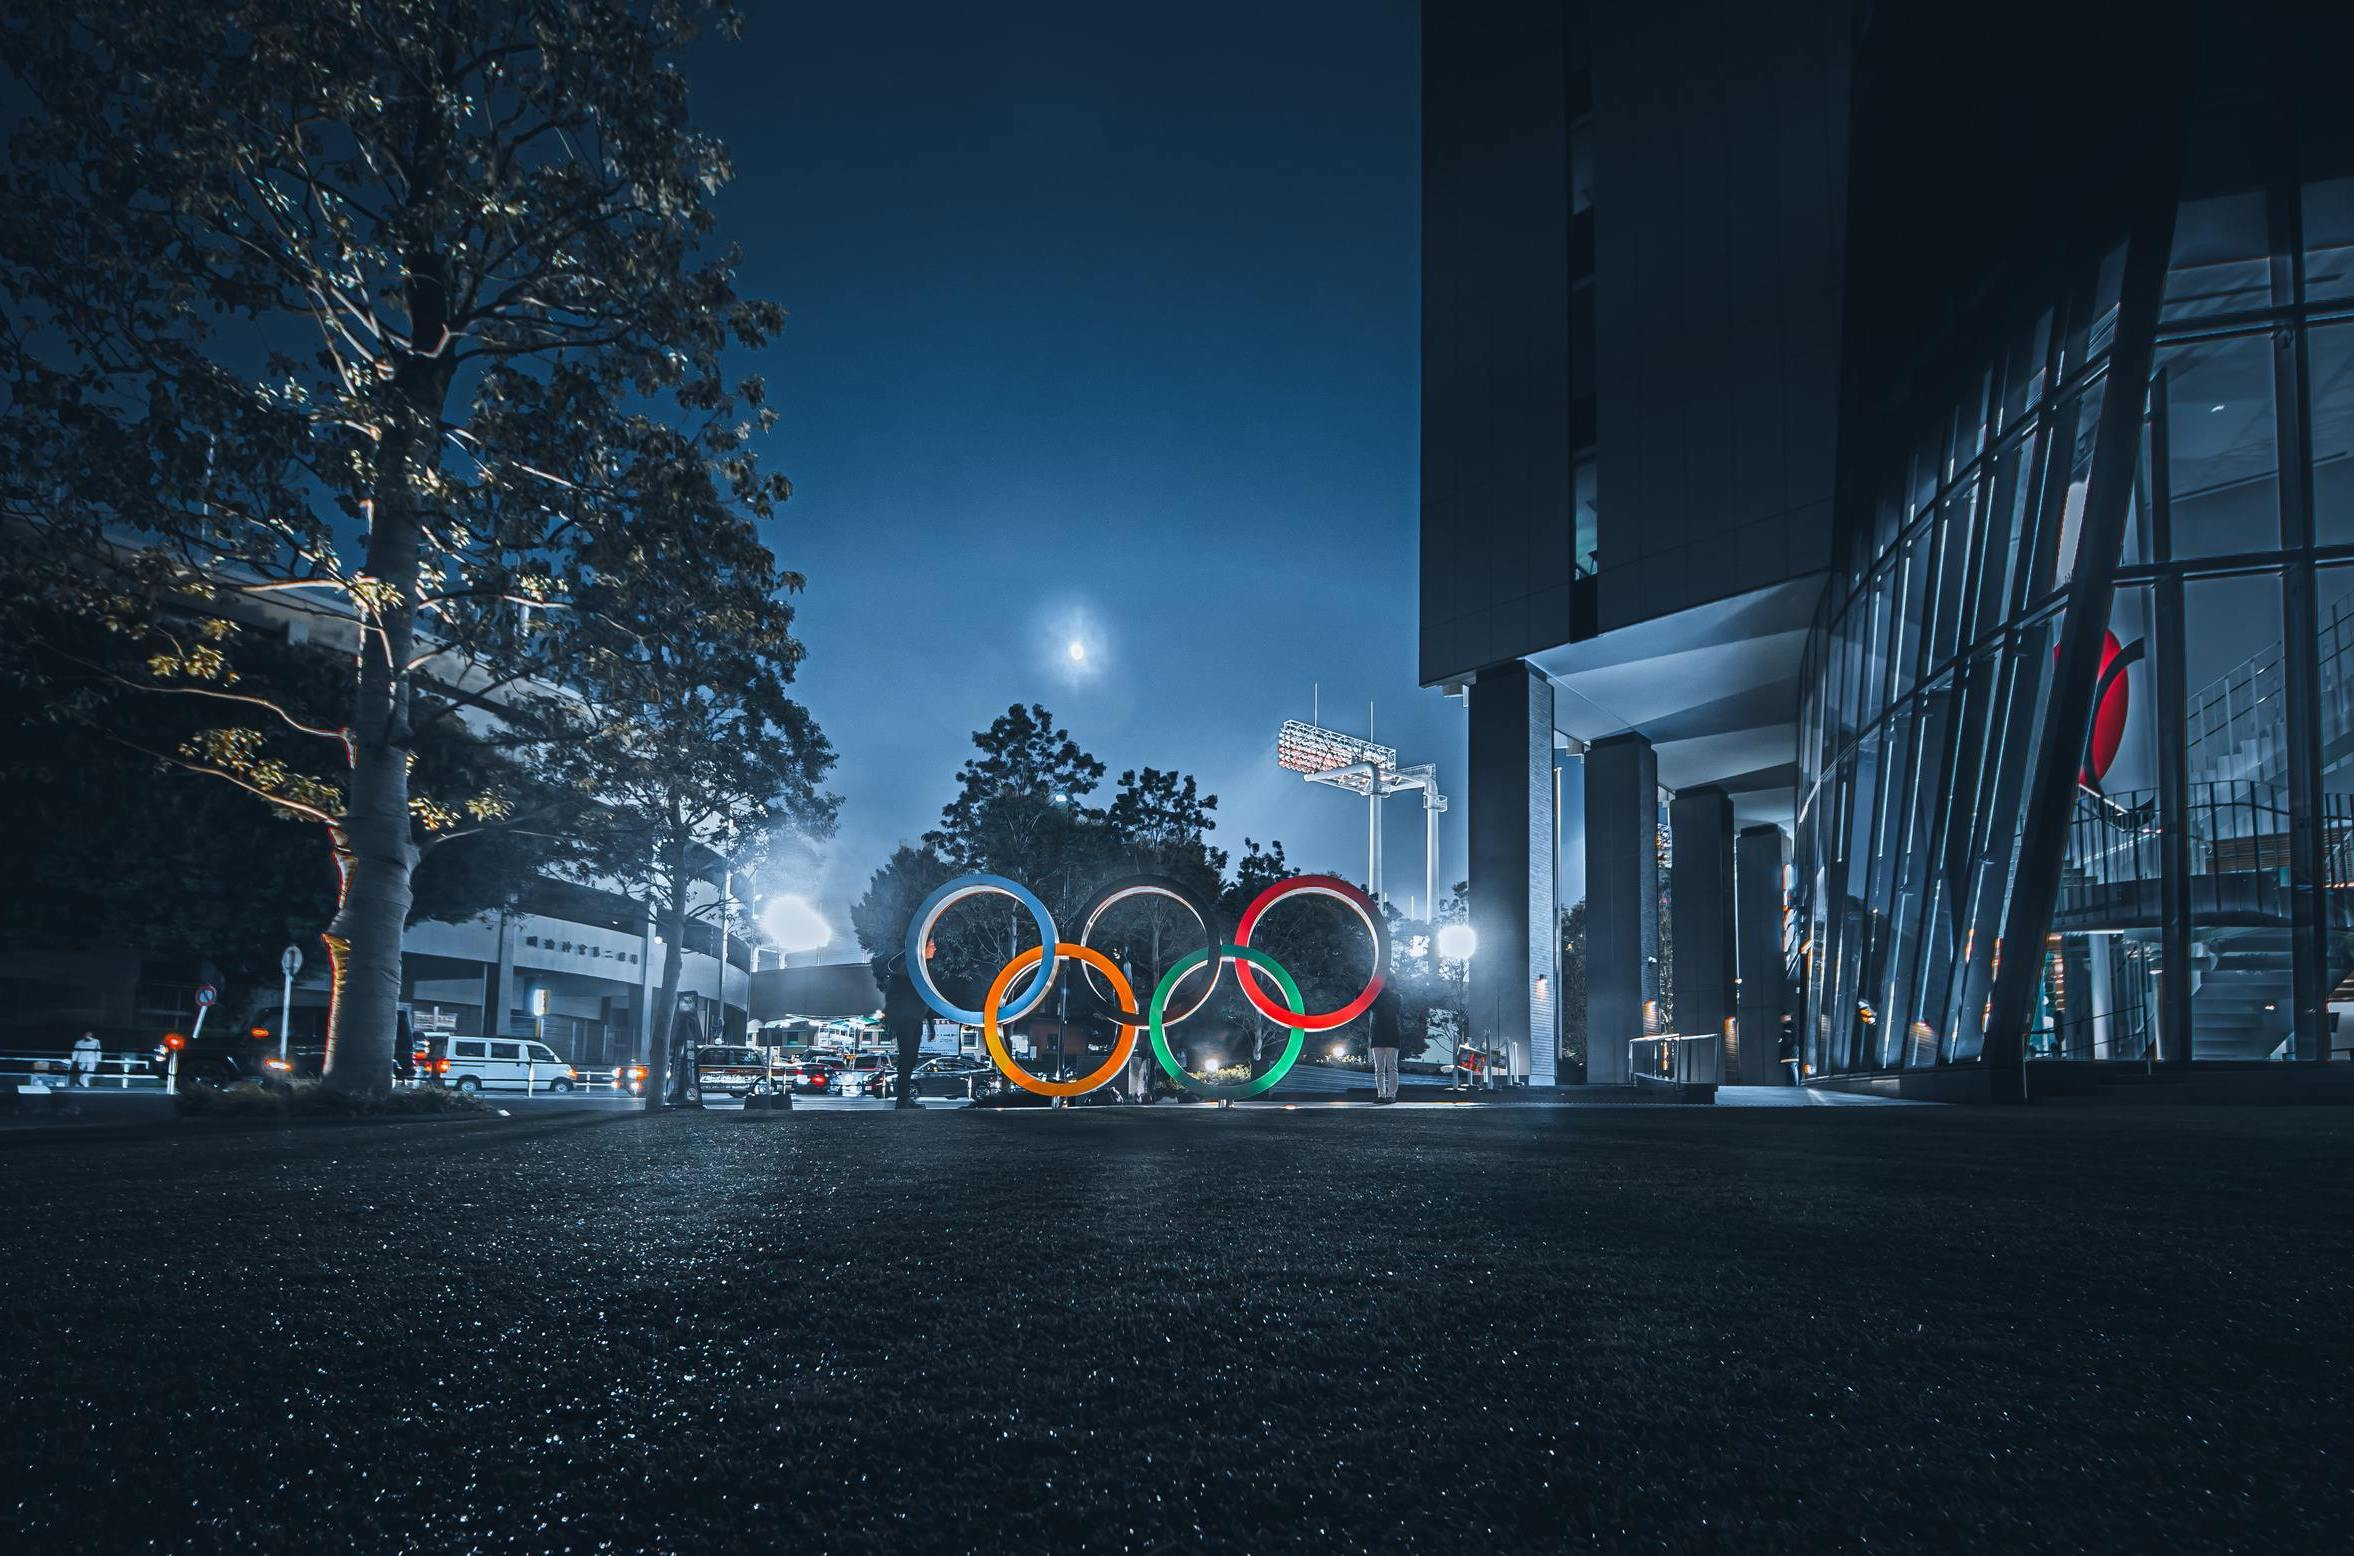 Tokyo 2020 Olympic, Olympic rings